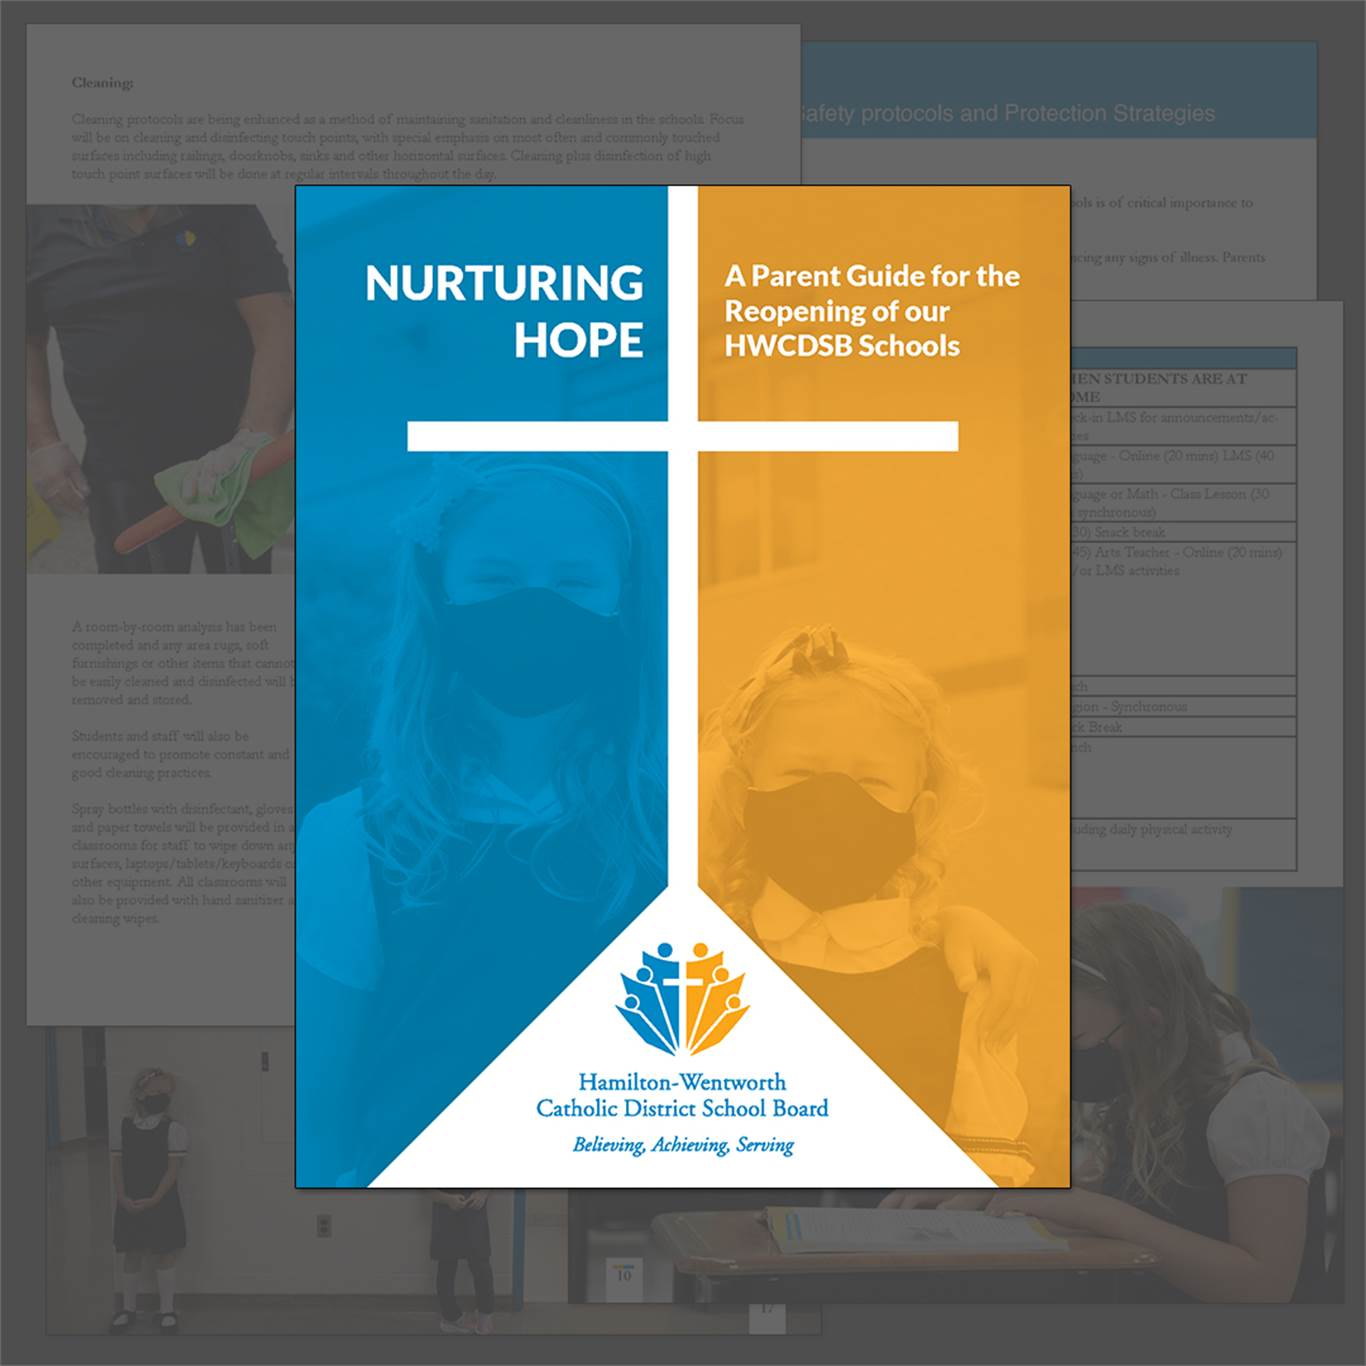 Nurturing Hope - A Parent Guide for the Reopening of our HWCDSB Schools